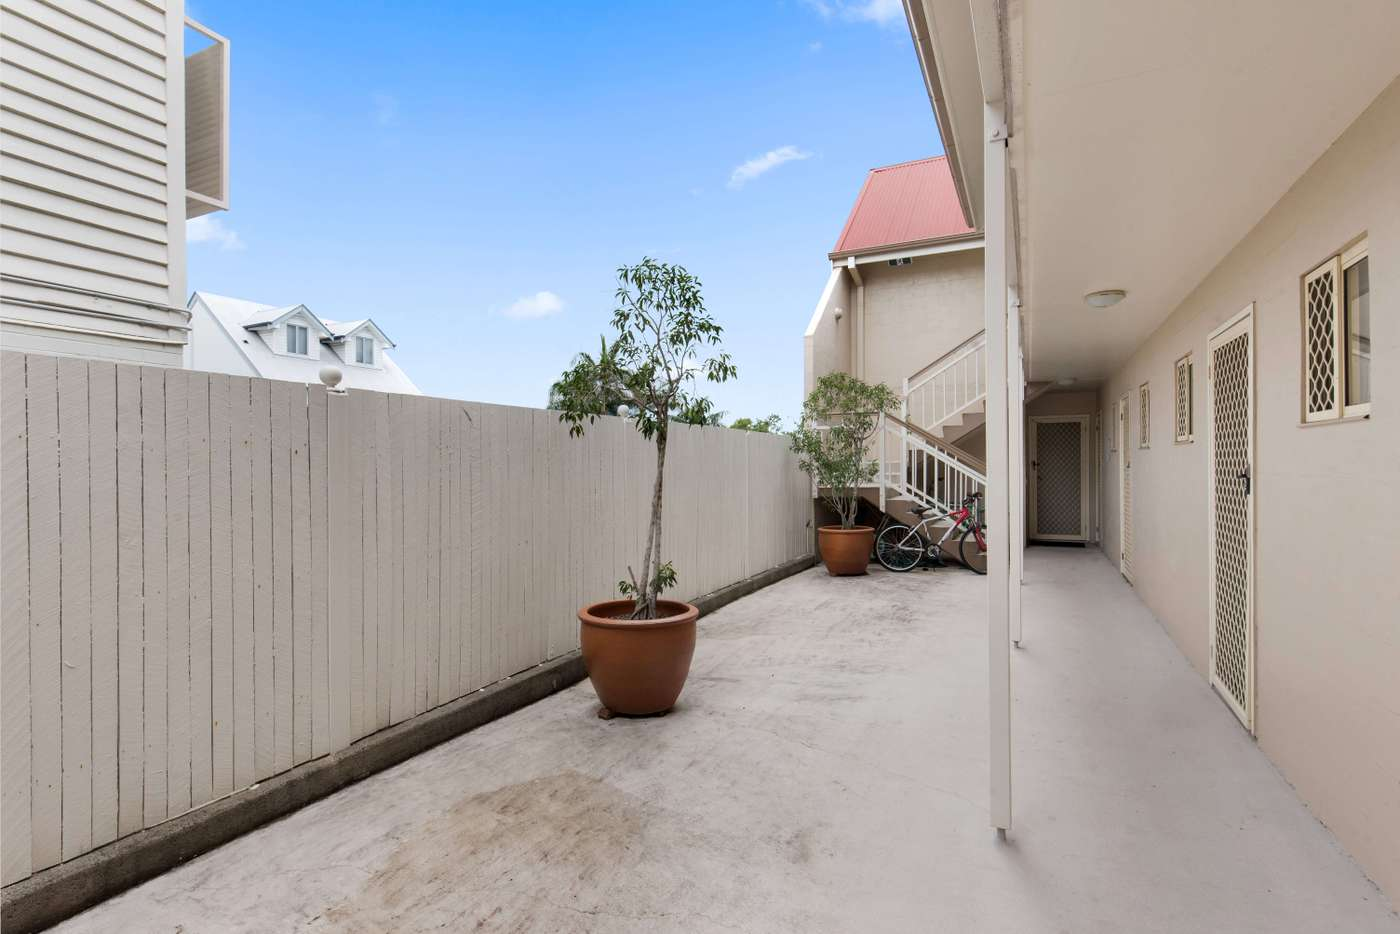 Sixth view of Homely apartment listing, 6/186 Petrie Terrace, Petrie Terrace QLD 4000